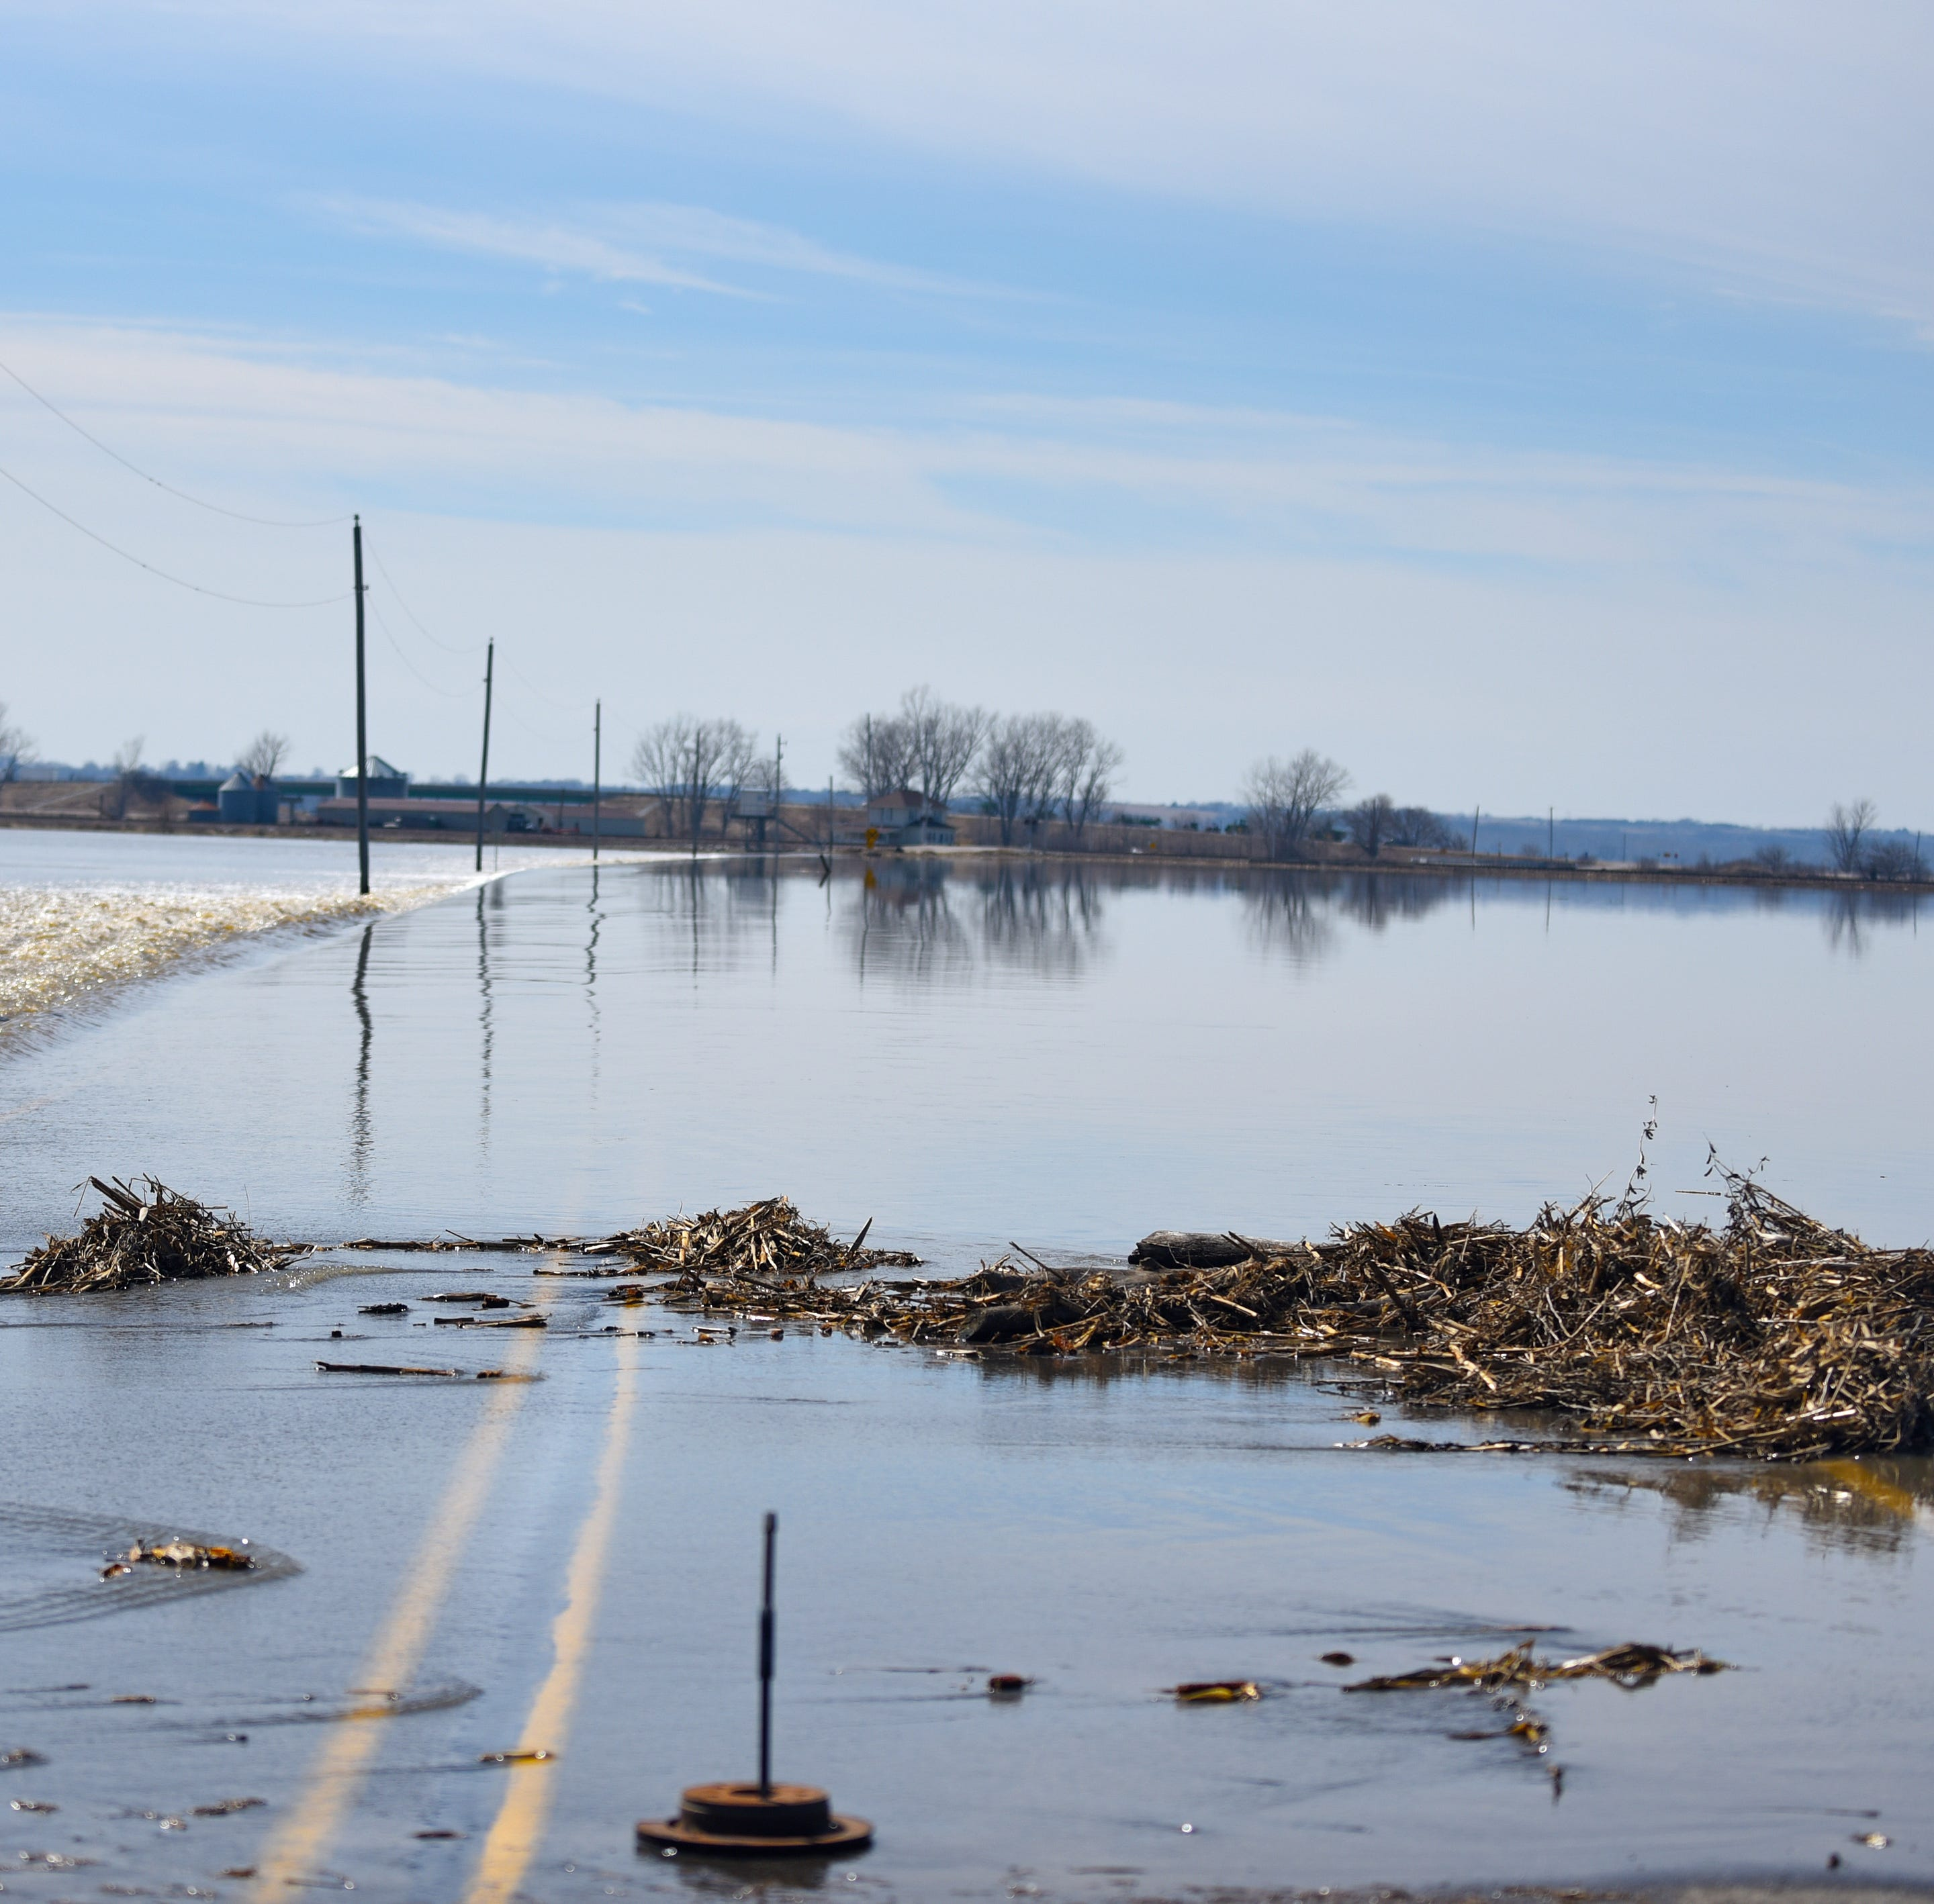 Flooded western Iowa roads could take months to re-open, officials say